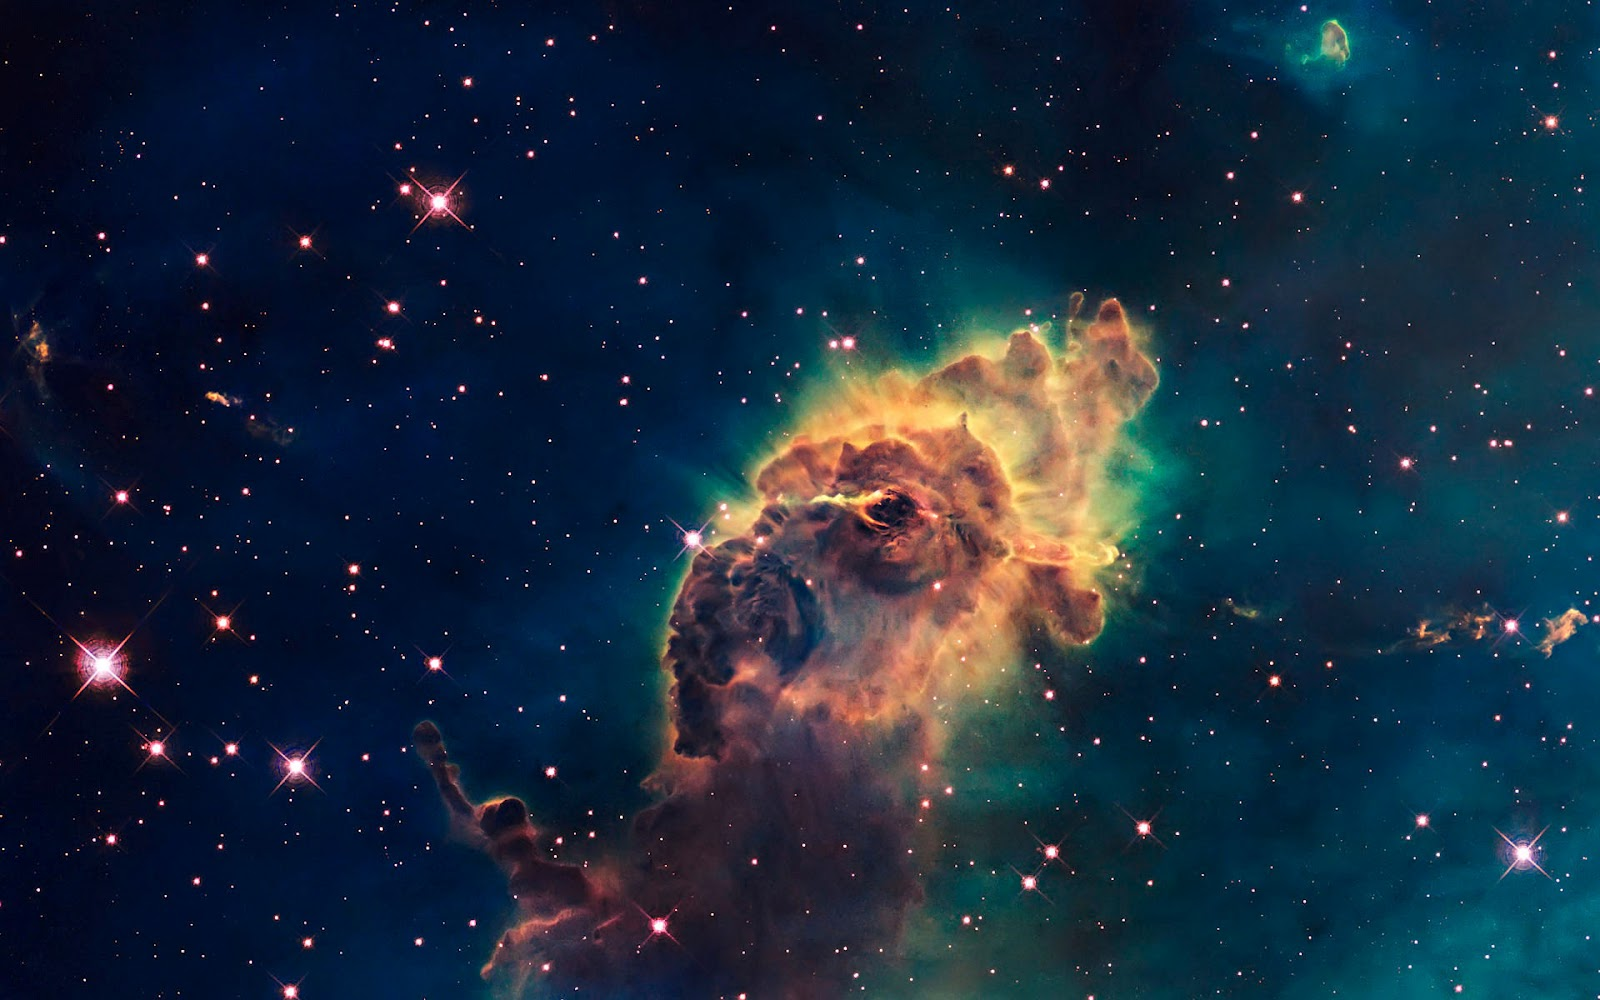 Space pictures galaxy wallpapers hd galaxy wallpaper photo 4jpg 1600x1000